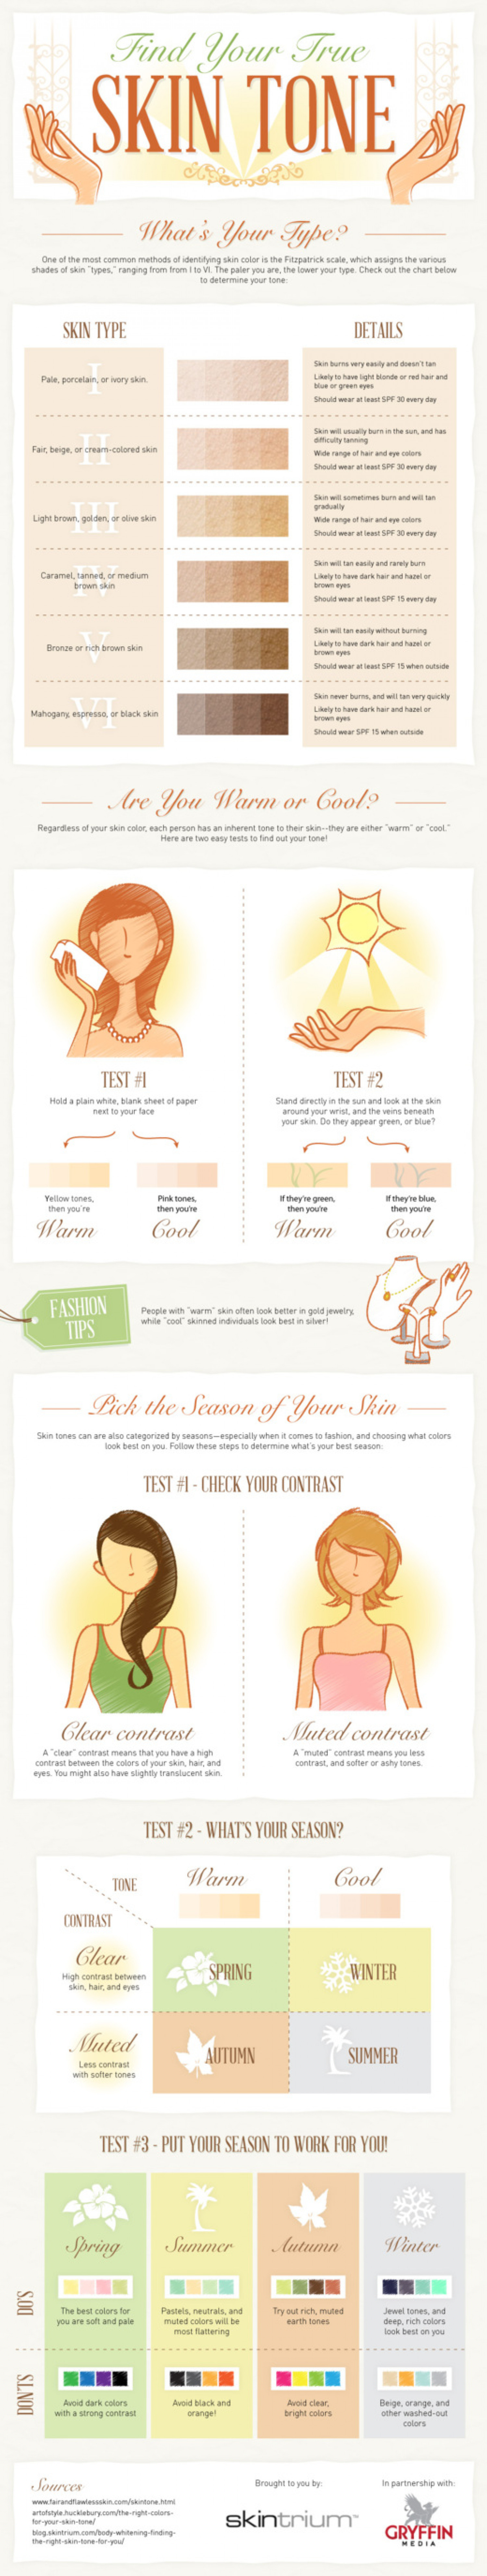 Find Your True Skin Tone Infographic